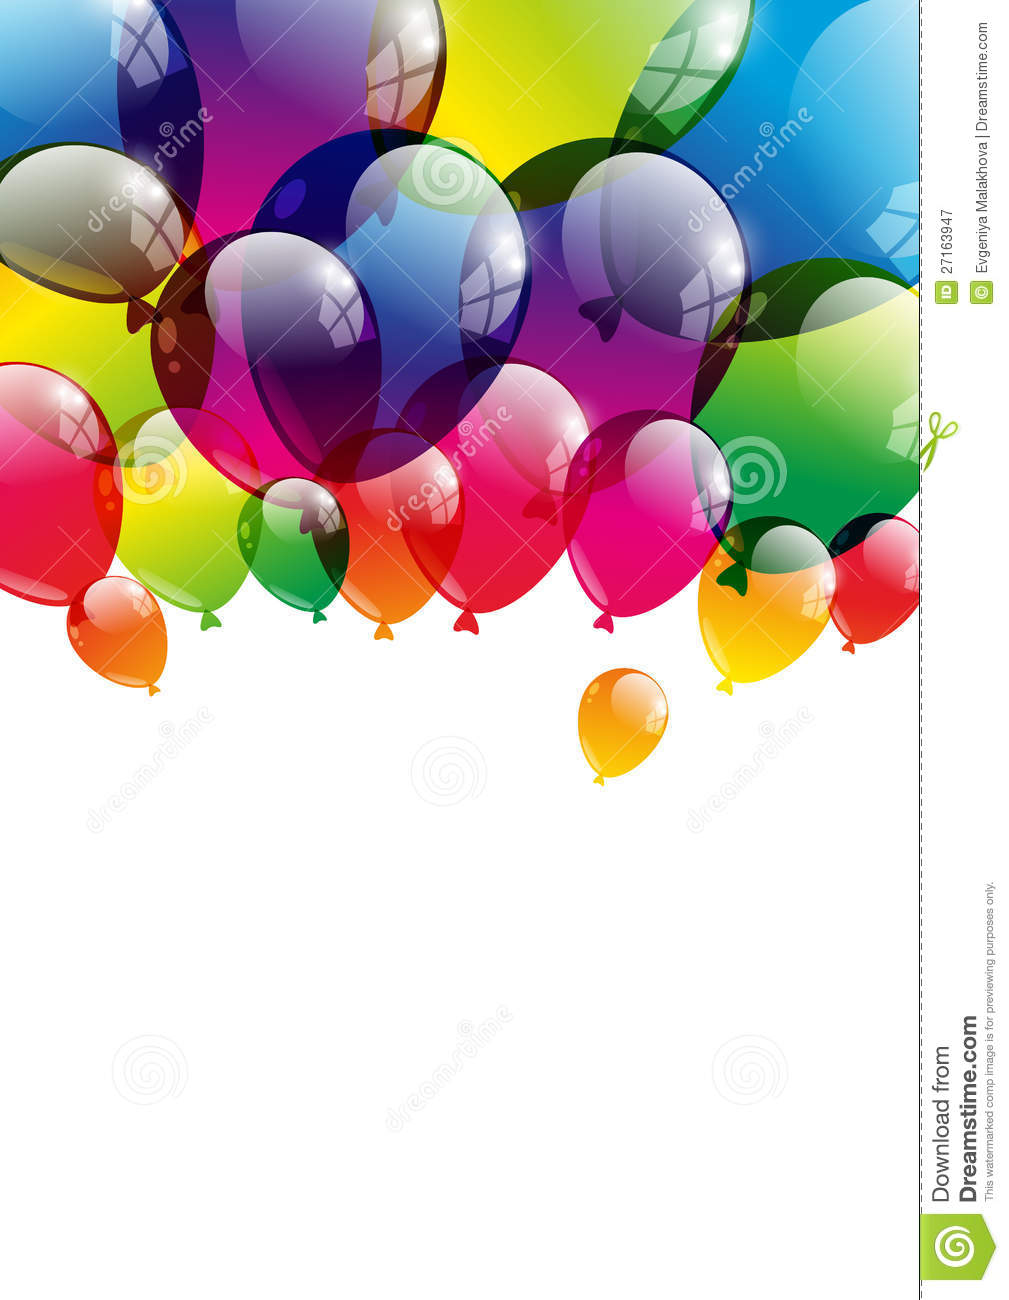 Balloon background royalty free stock photography image 27163947